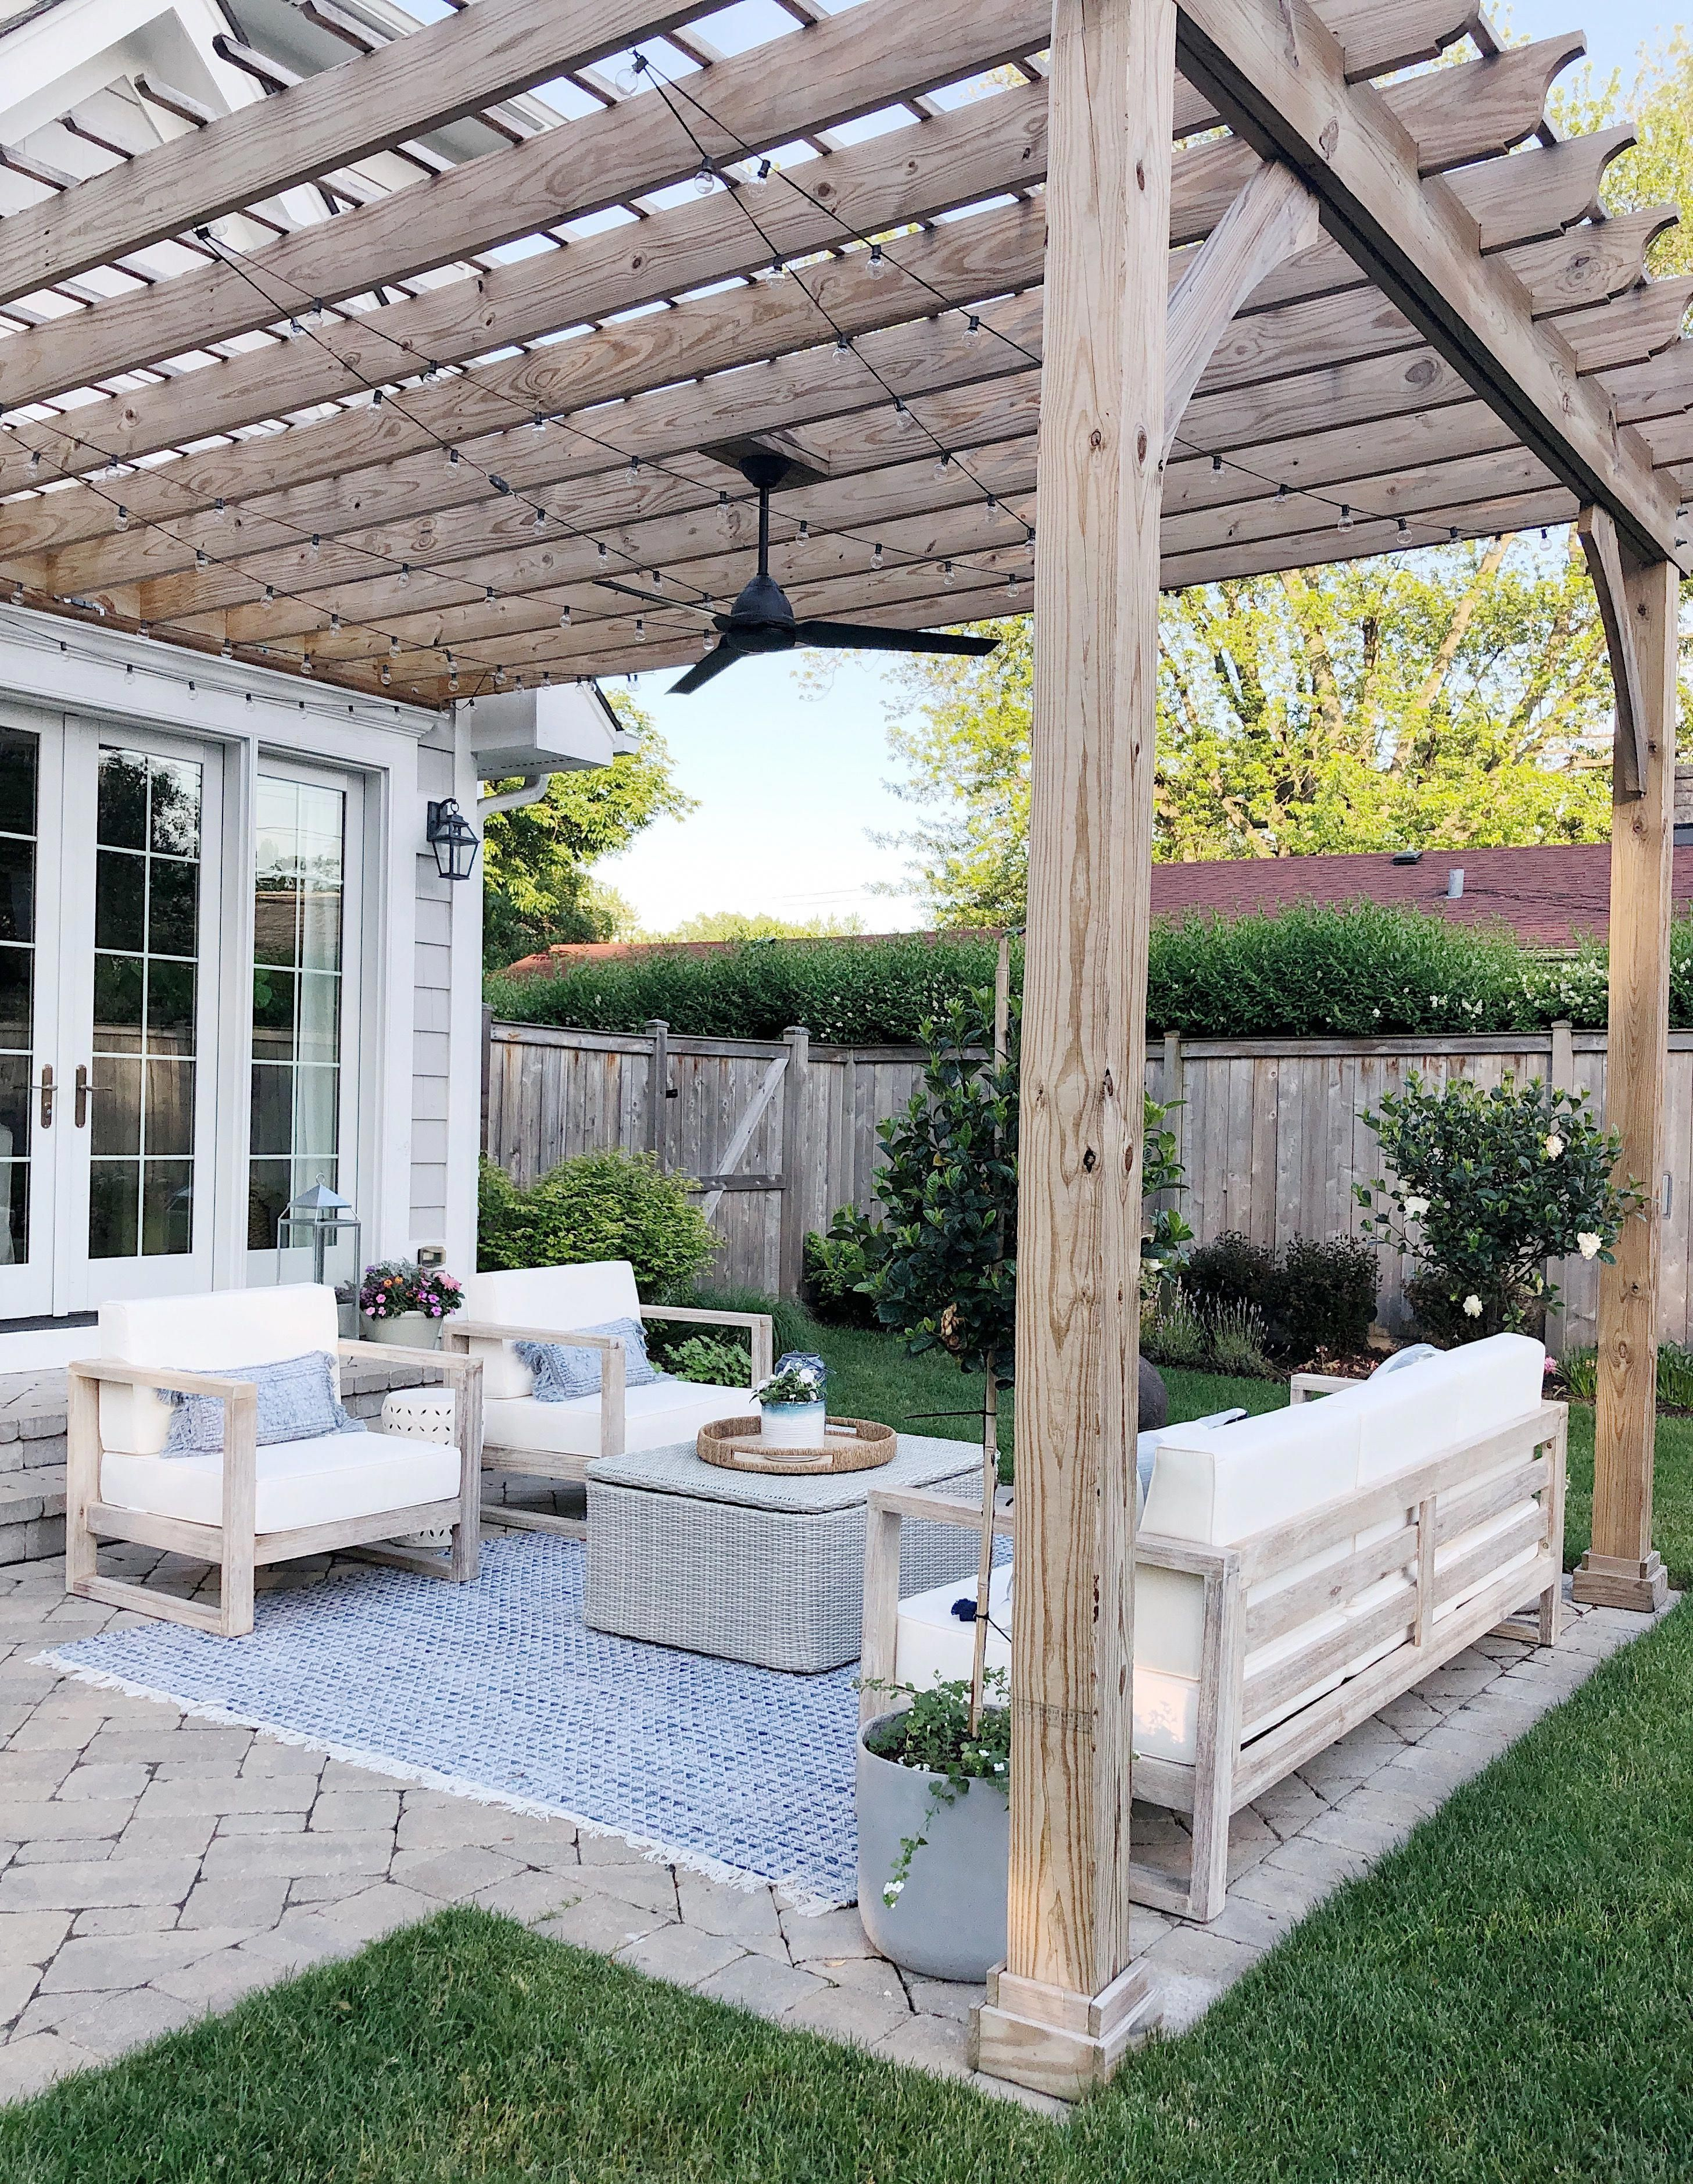 beach pergola ideas on this excellent beach cottage california can be a very inspiring and awesome idea beachcottagecal backyard patio designs outdoor patio decor outdoor rugs patio backyard patio designs